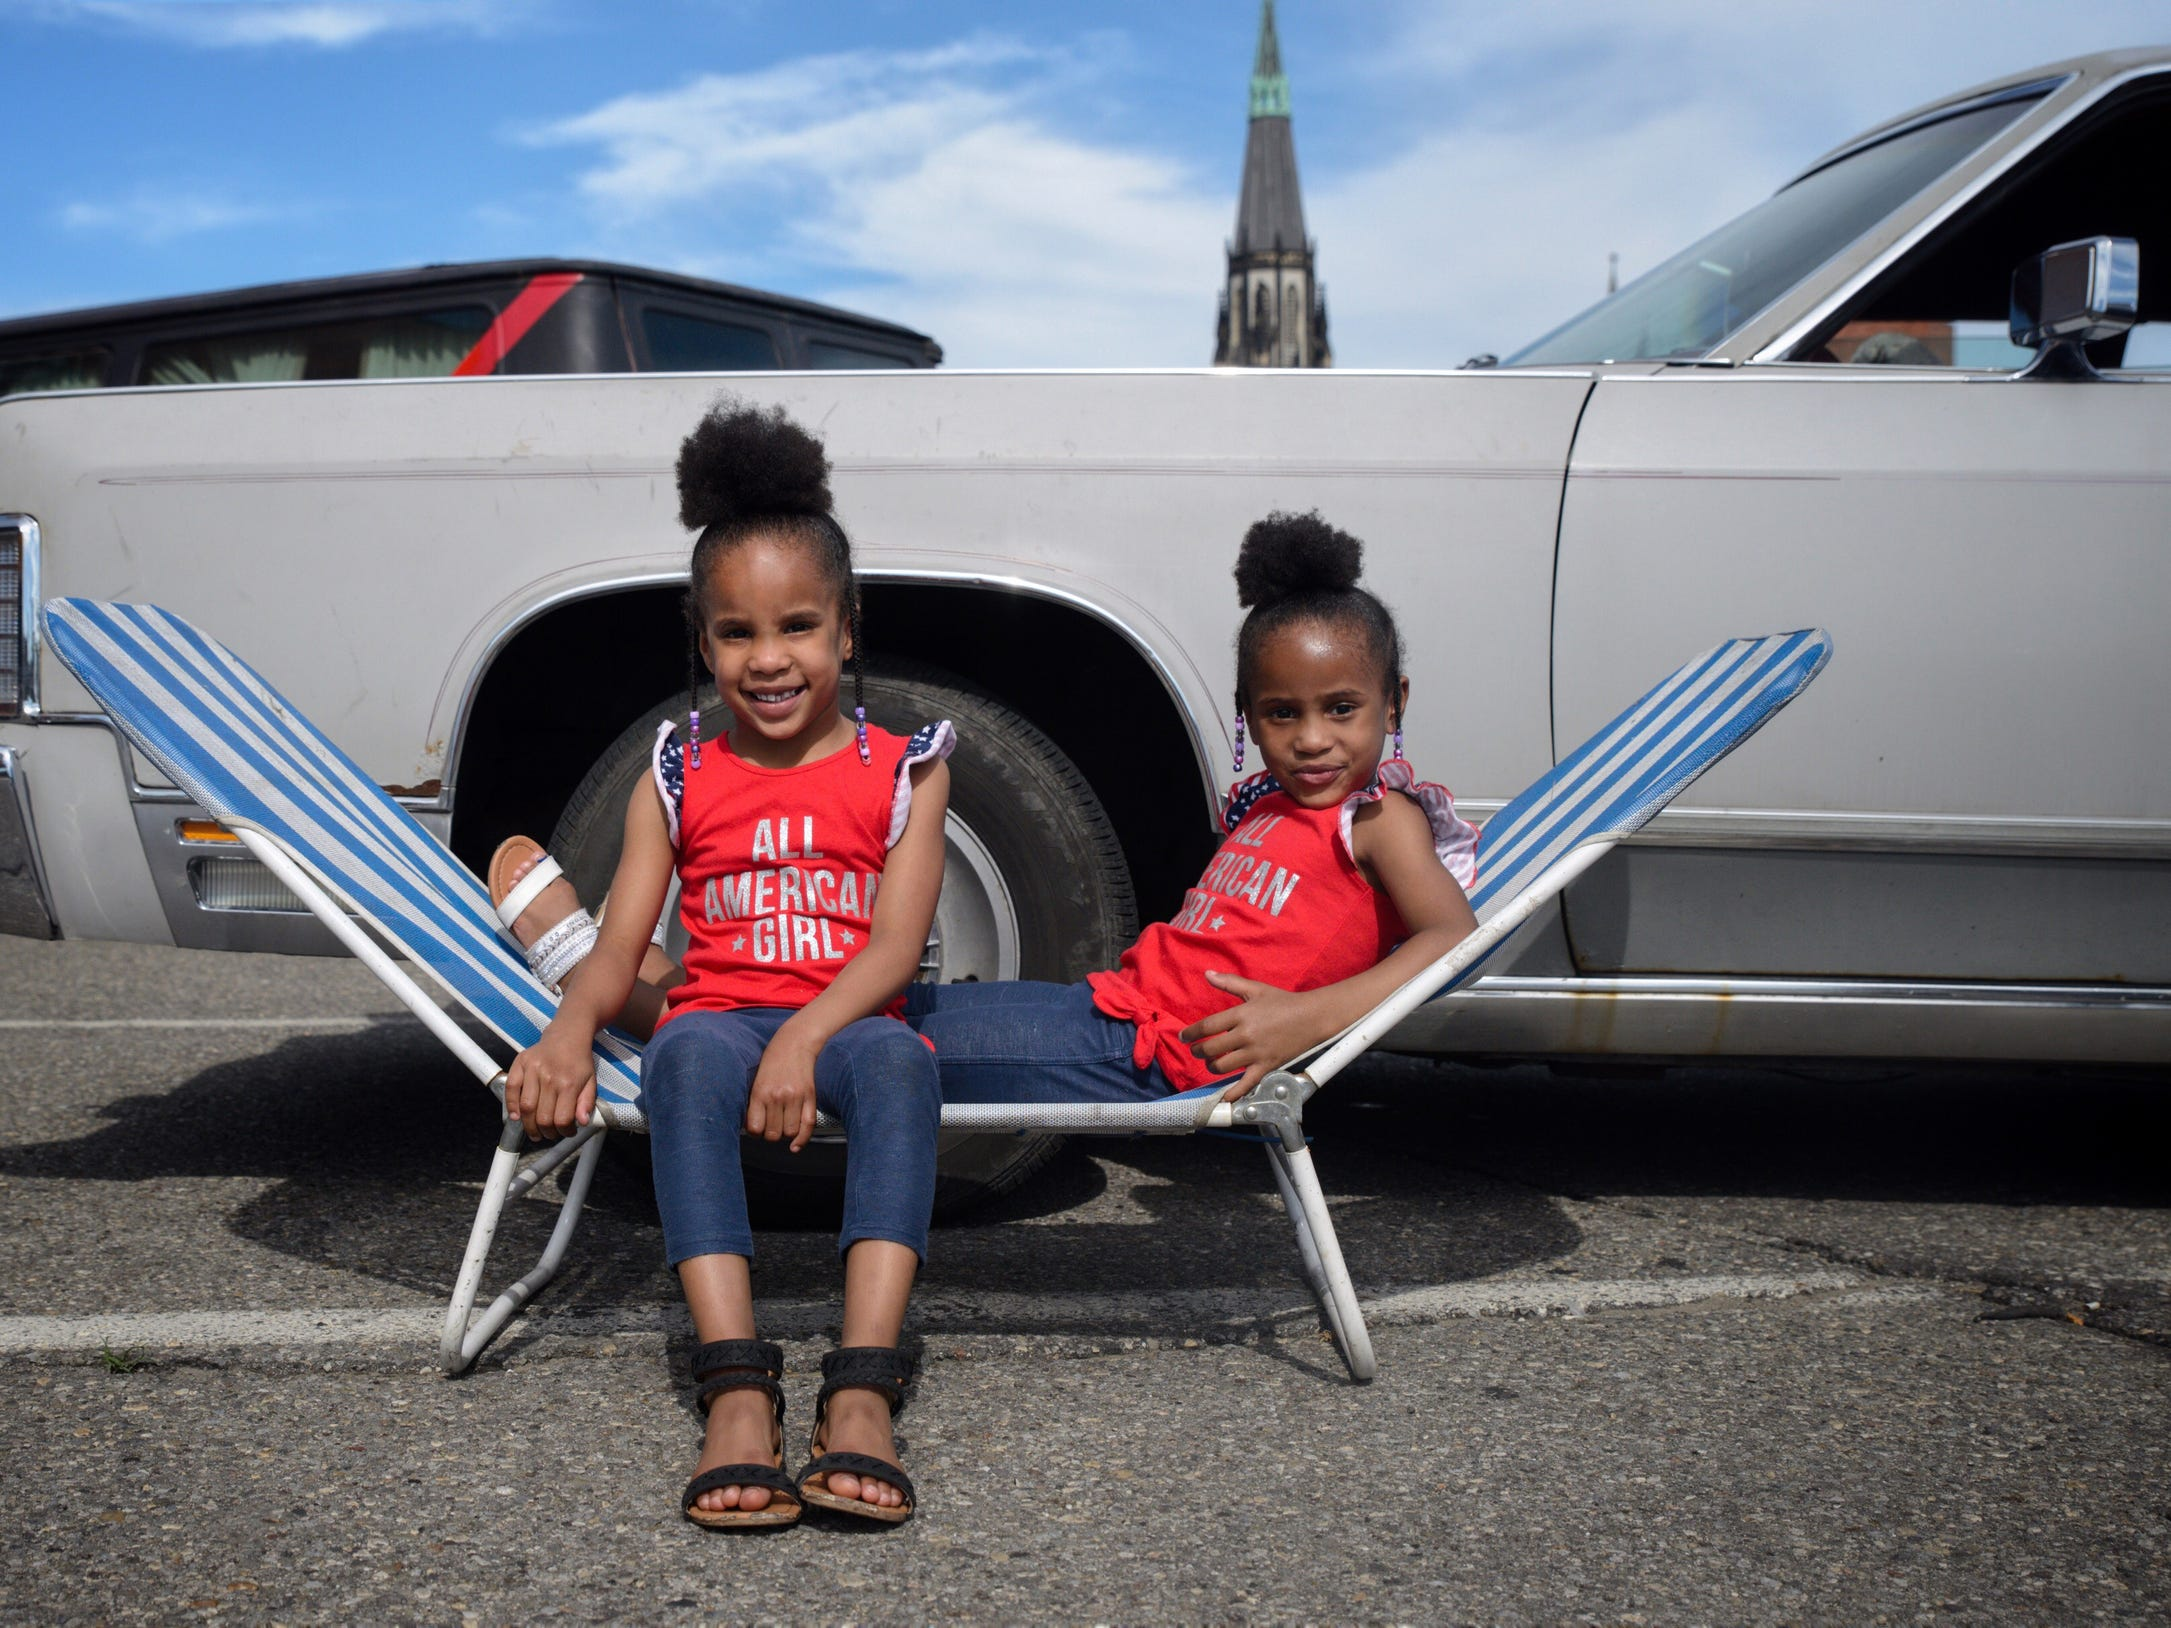 Mariah and Myah Molborough pose for a portrait before the 2018 Ford Fireworks in Detroit on Monday, June 25, 2018.